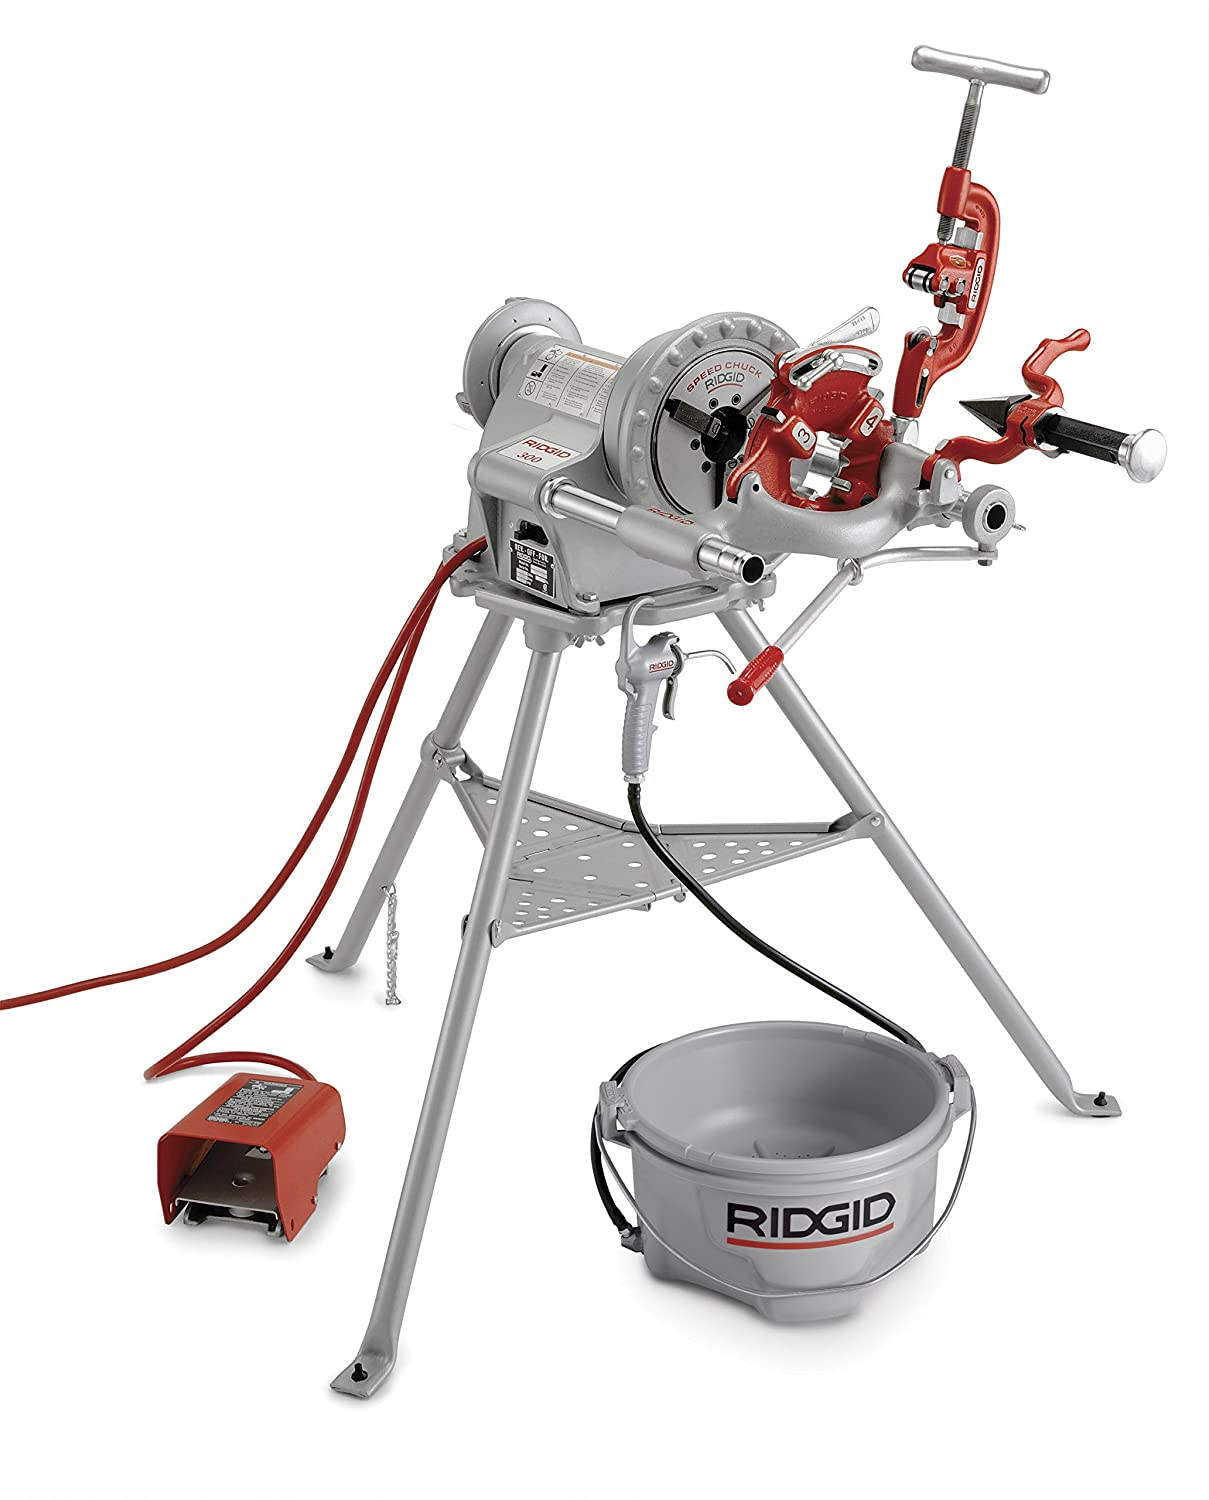 RIDGID 15682 Model 300 Power Drive Complete, 38 RPM Pipe Threading Machine  and 1/2-Inch to 3/4-Inch, 1-Inch to 2-Inch Universal Alloy Threading Die  Heads, ...